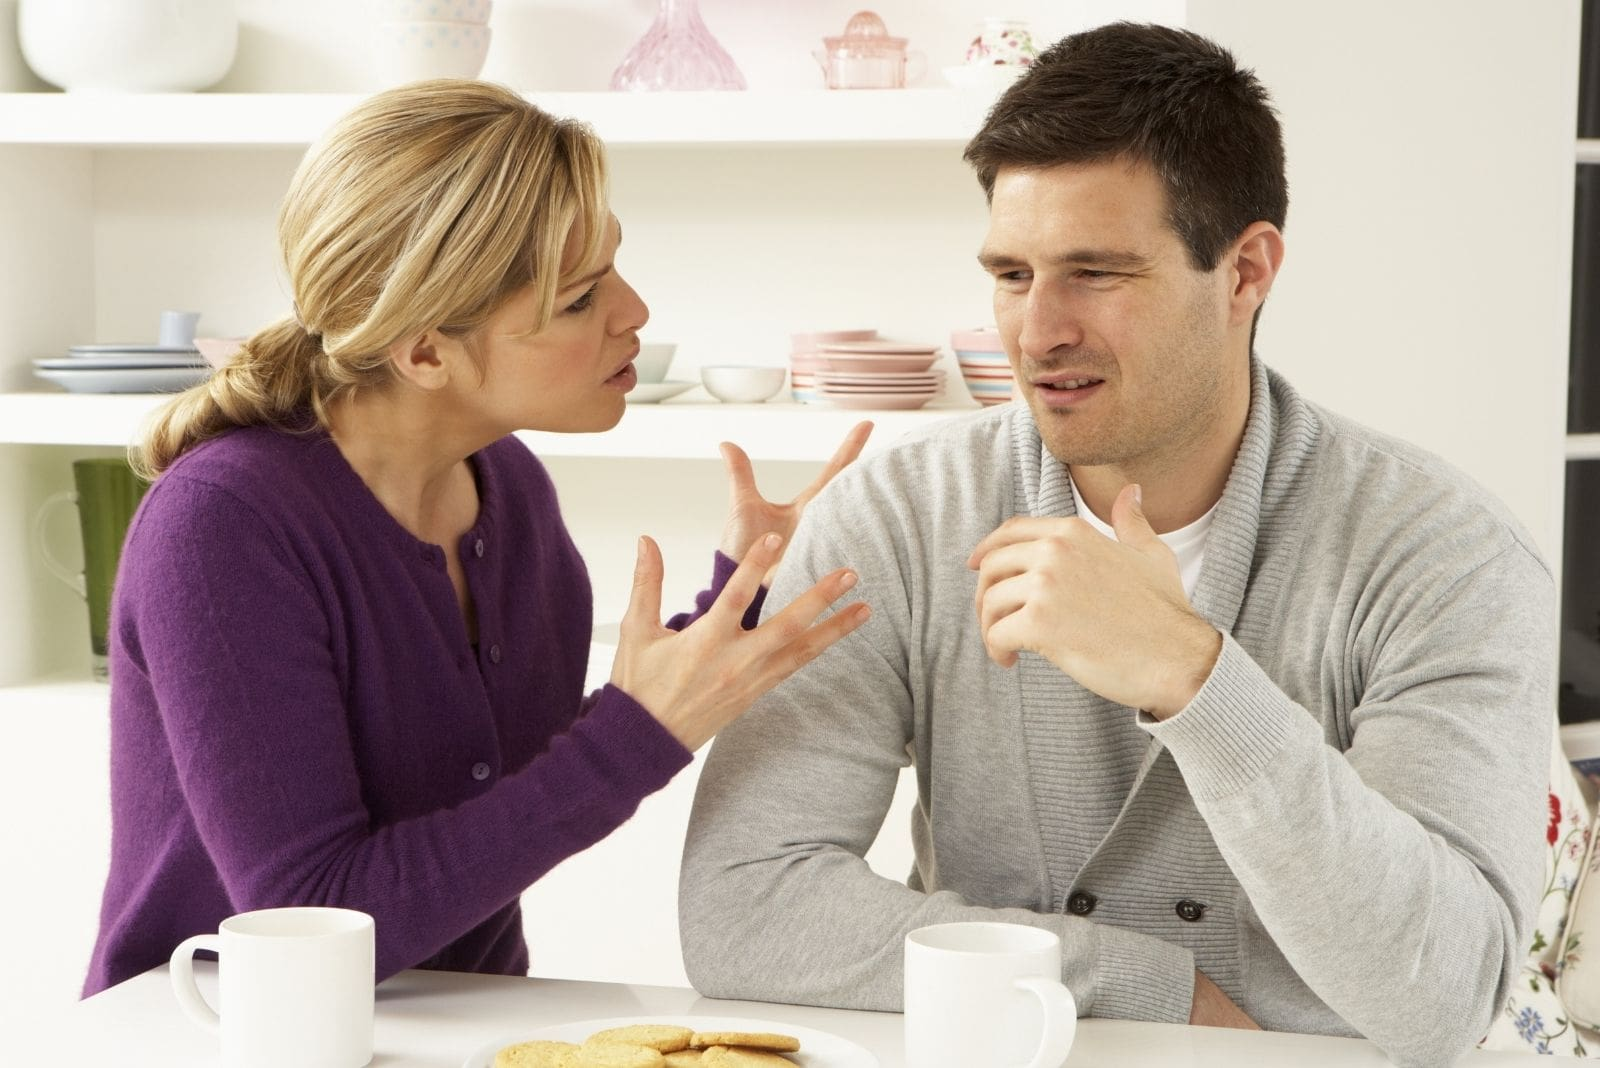 upset woman nagging on man sitting by the table in the kitchen